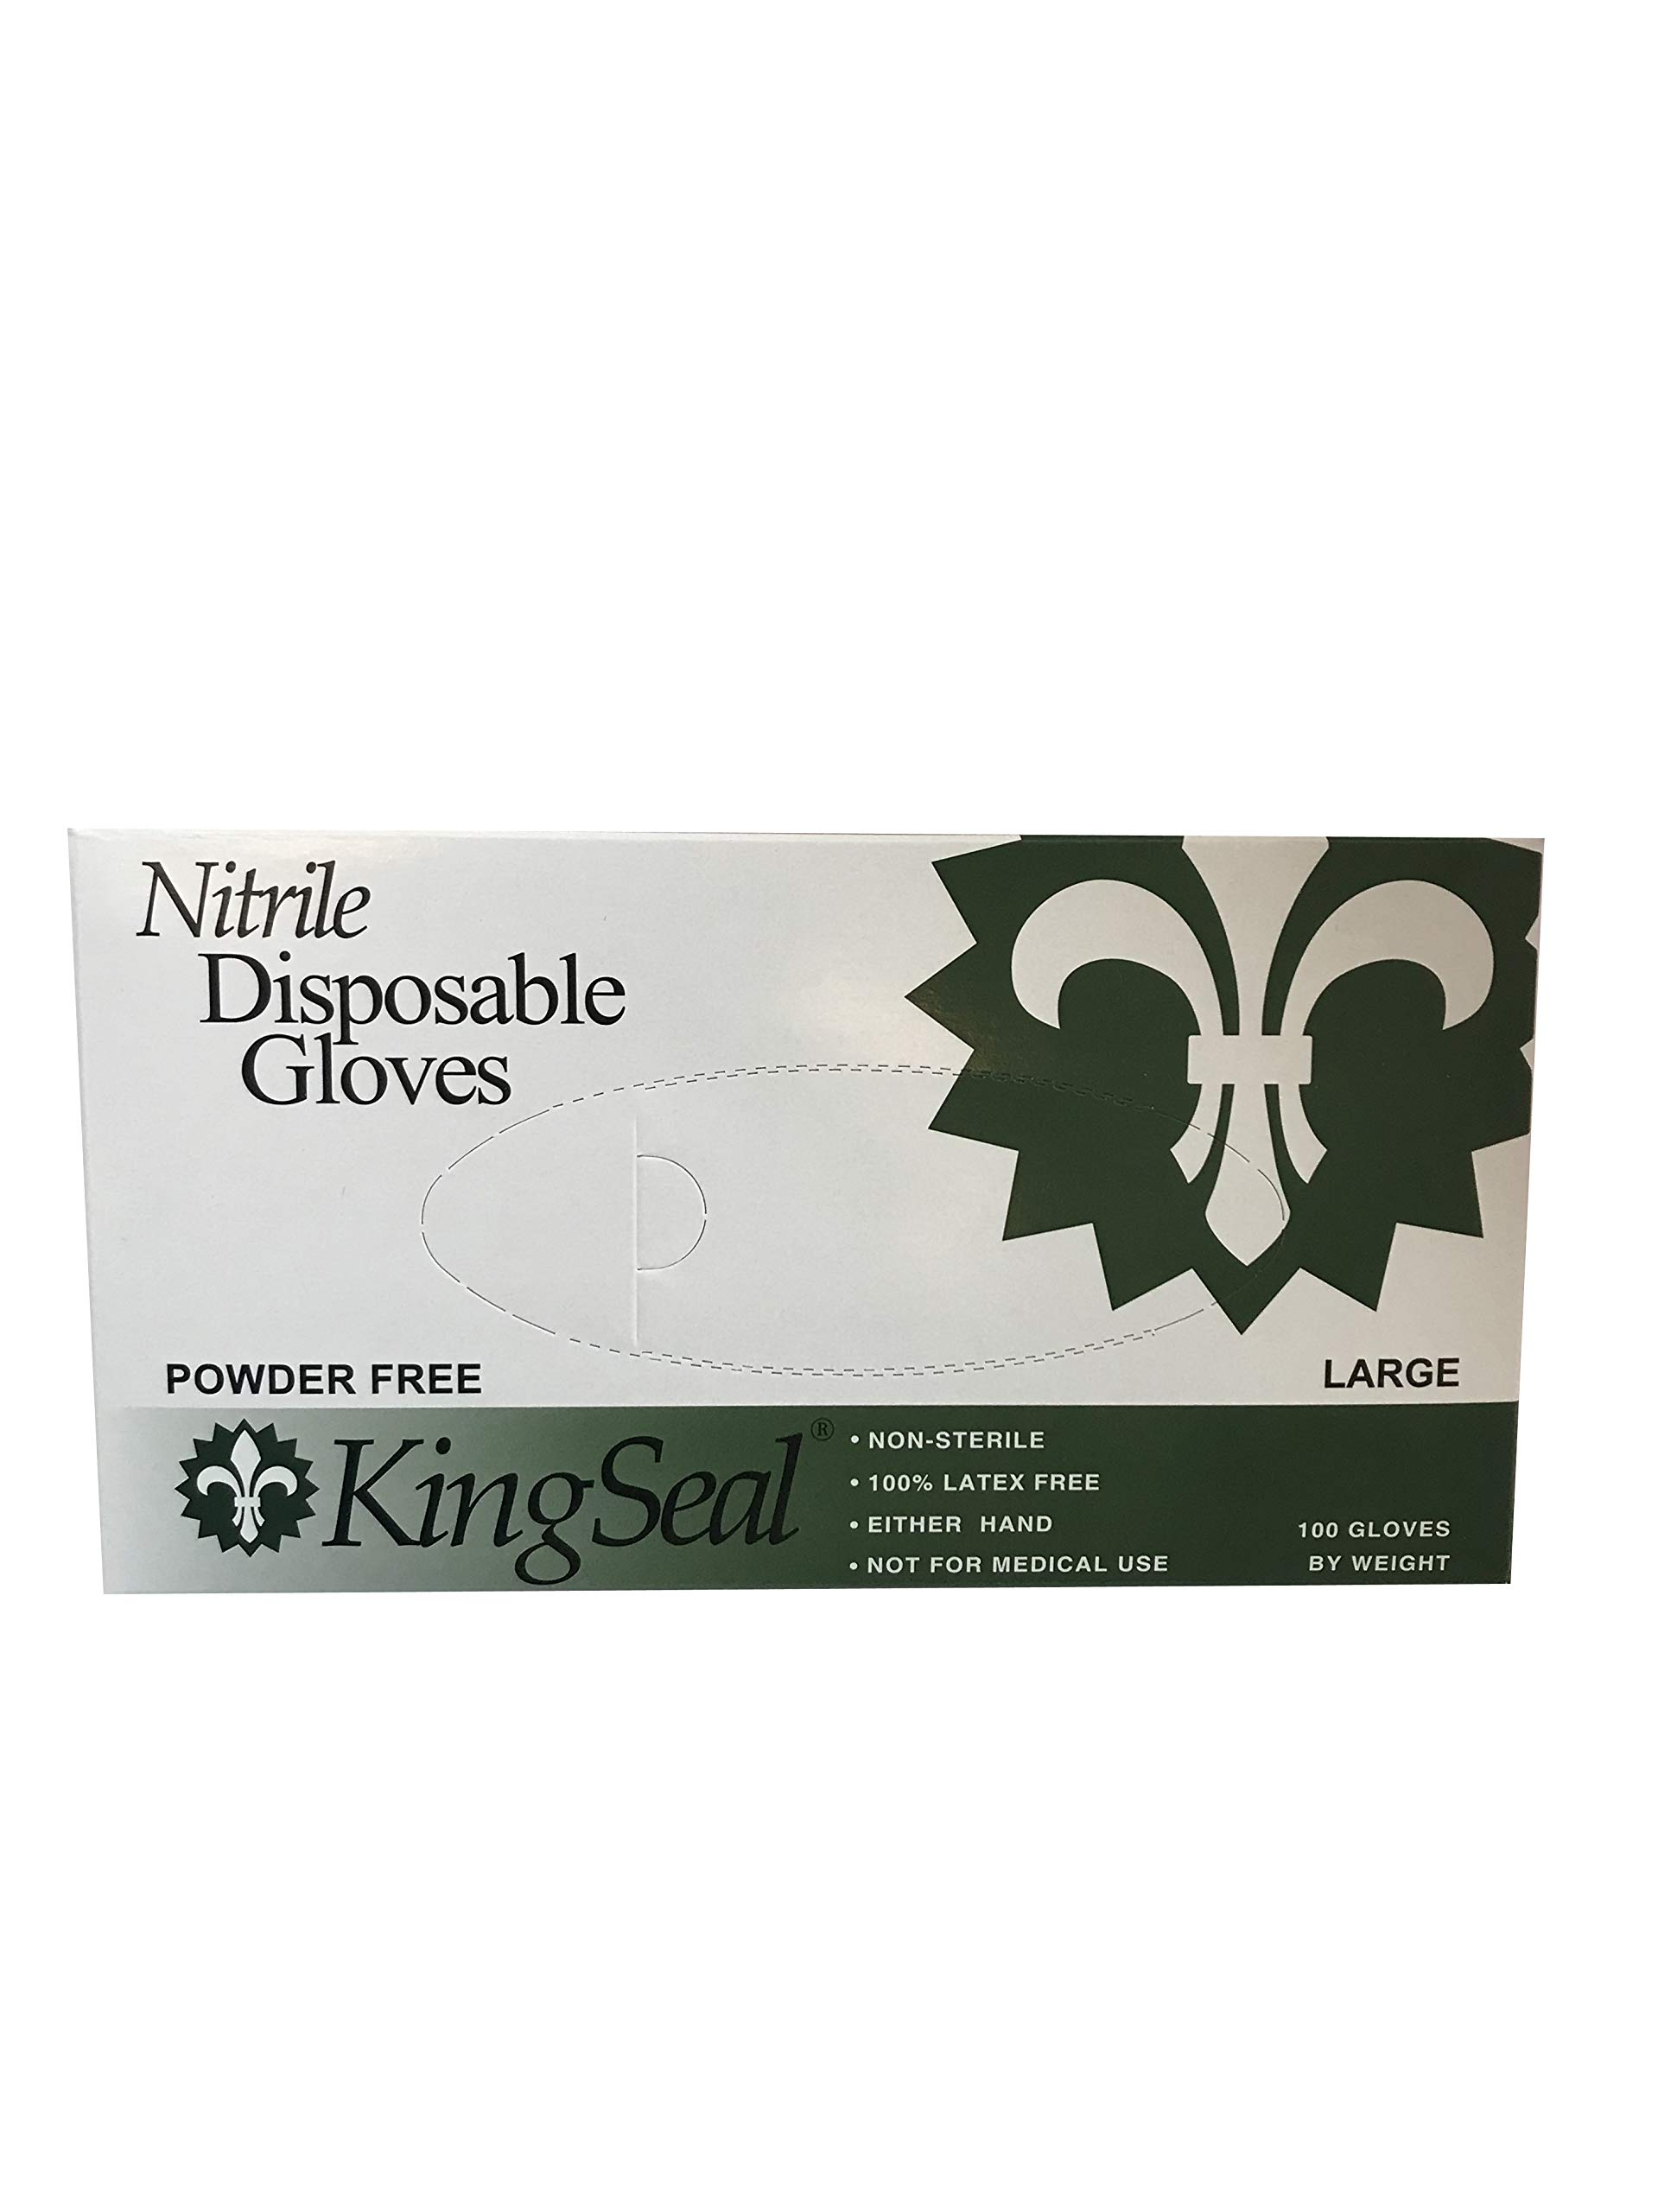 KingSeal Nitrile Disposable Gloves, Powder-Free, Latex-Free, Blue, 4 mil, Size Large - 4 boxes of 100 per box (400pcs total)